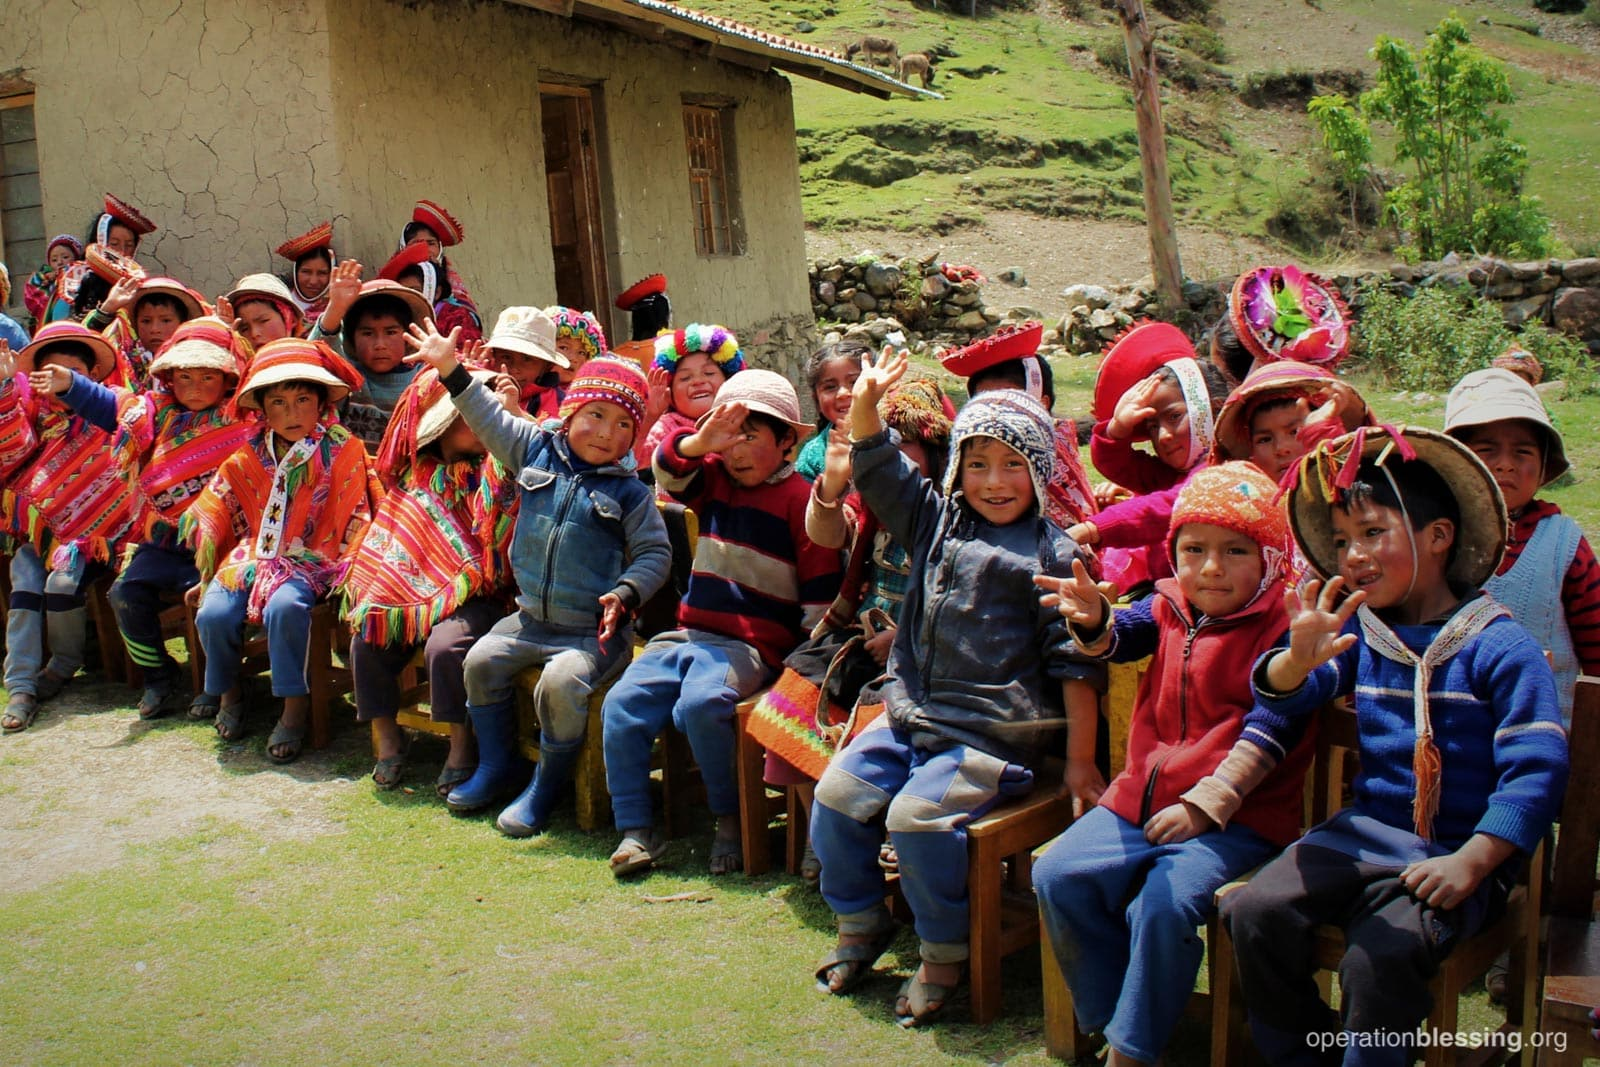 These adorable school children in Cusco will now have safe water.